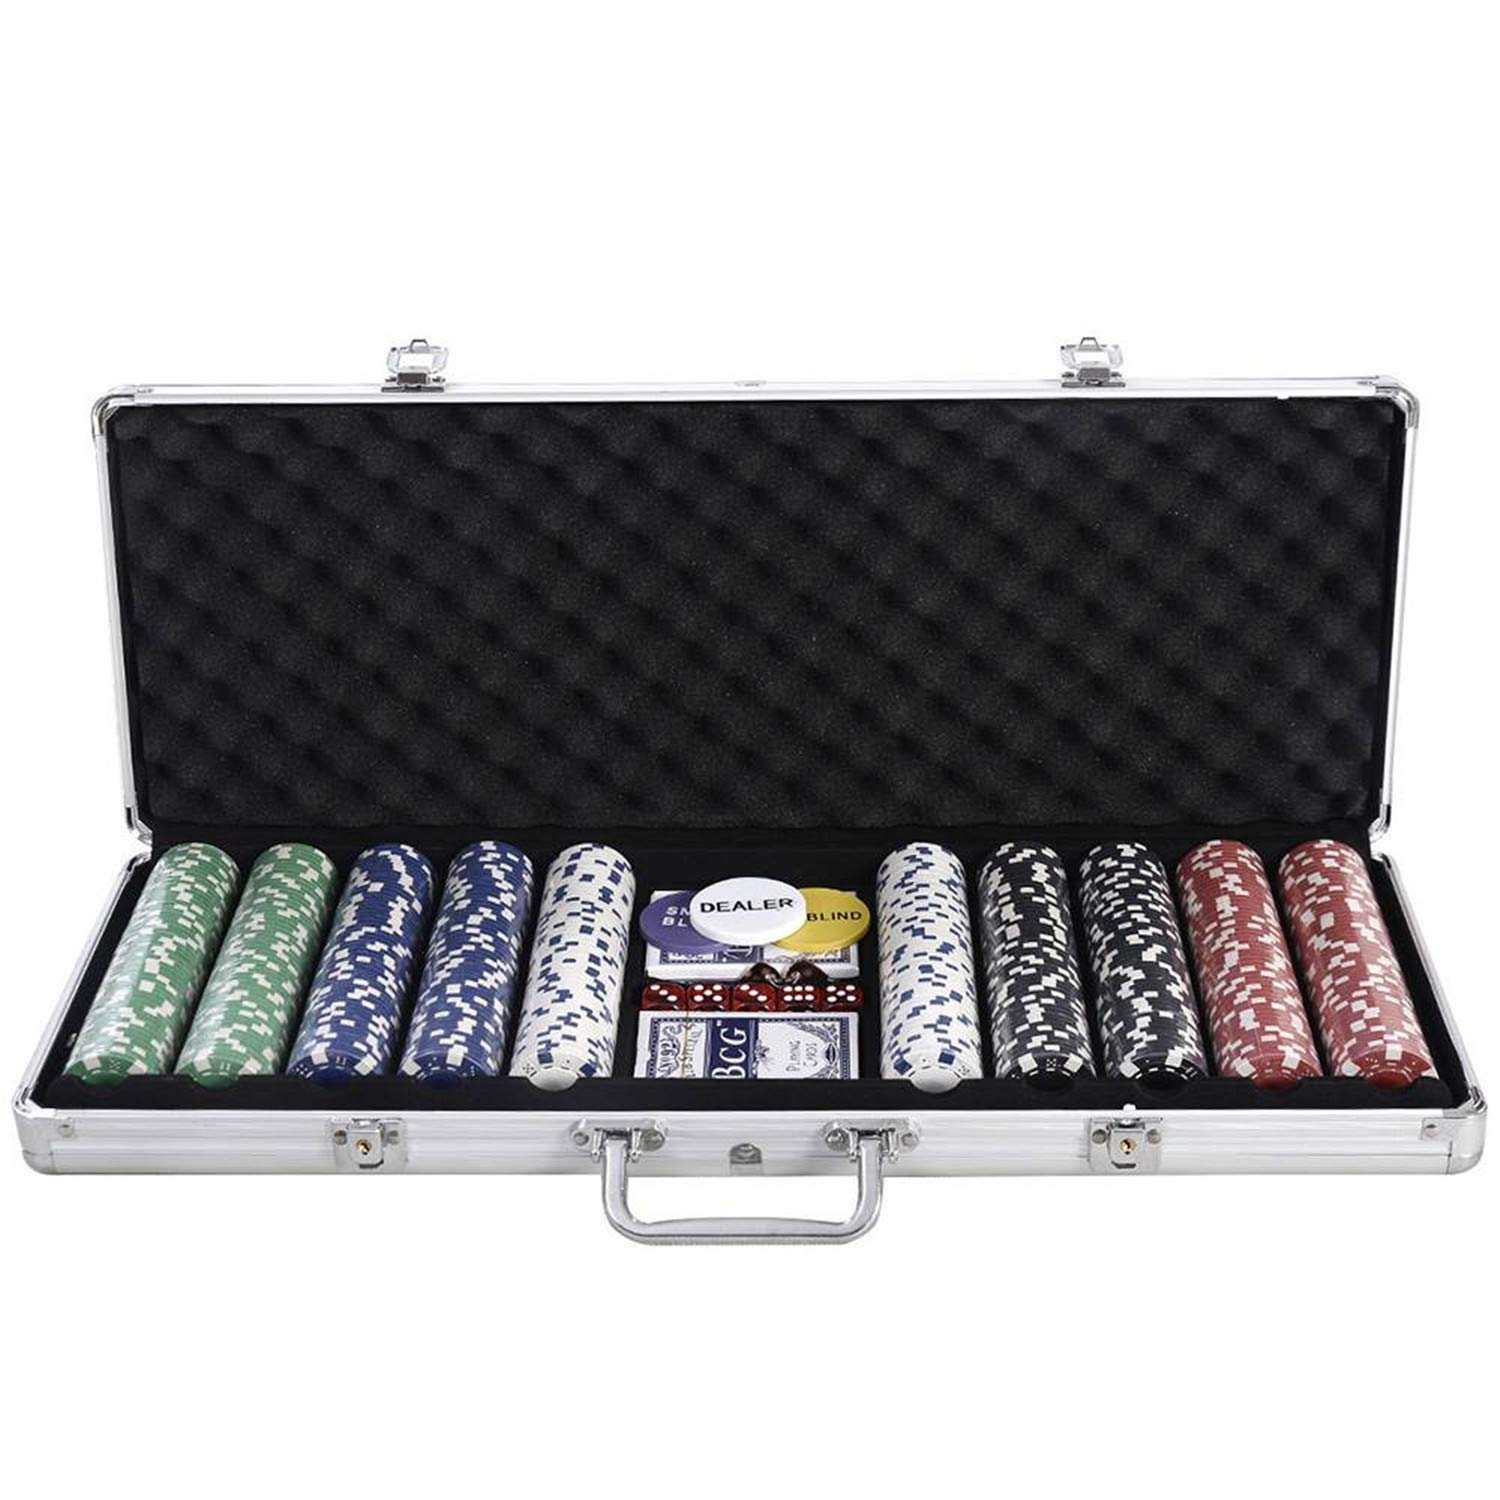 New Portable 500 Chips Poker Dice Chip Set Texas Hold'em Cards Aluminum Case by SHUTAO